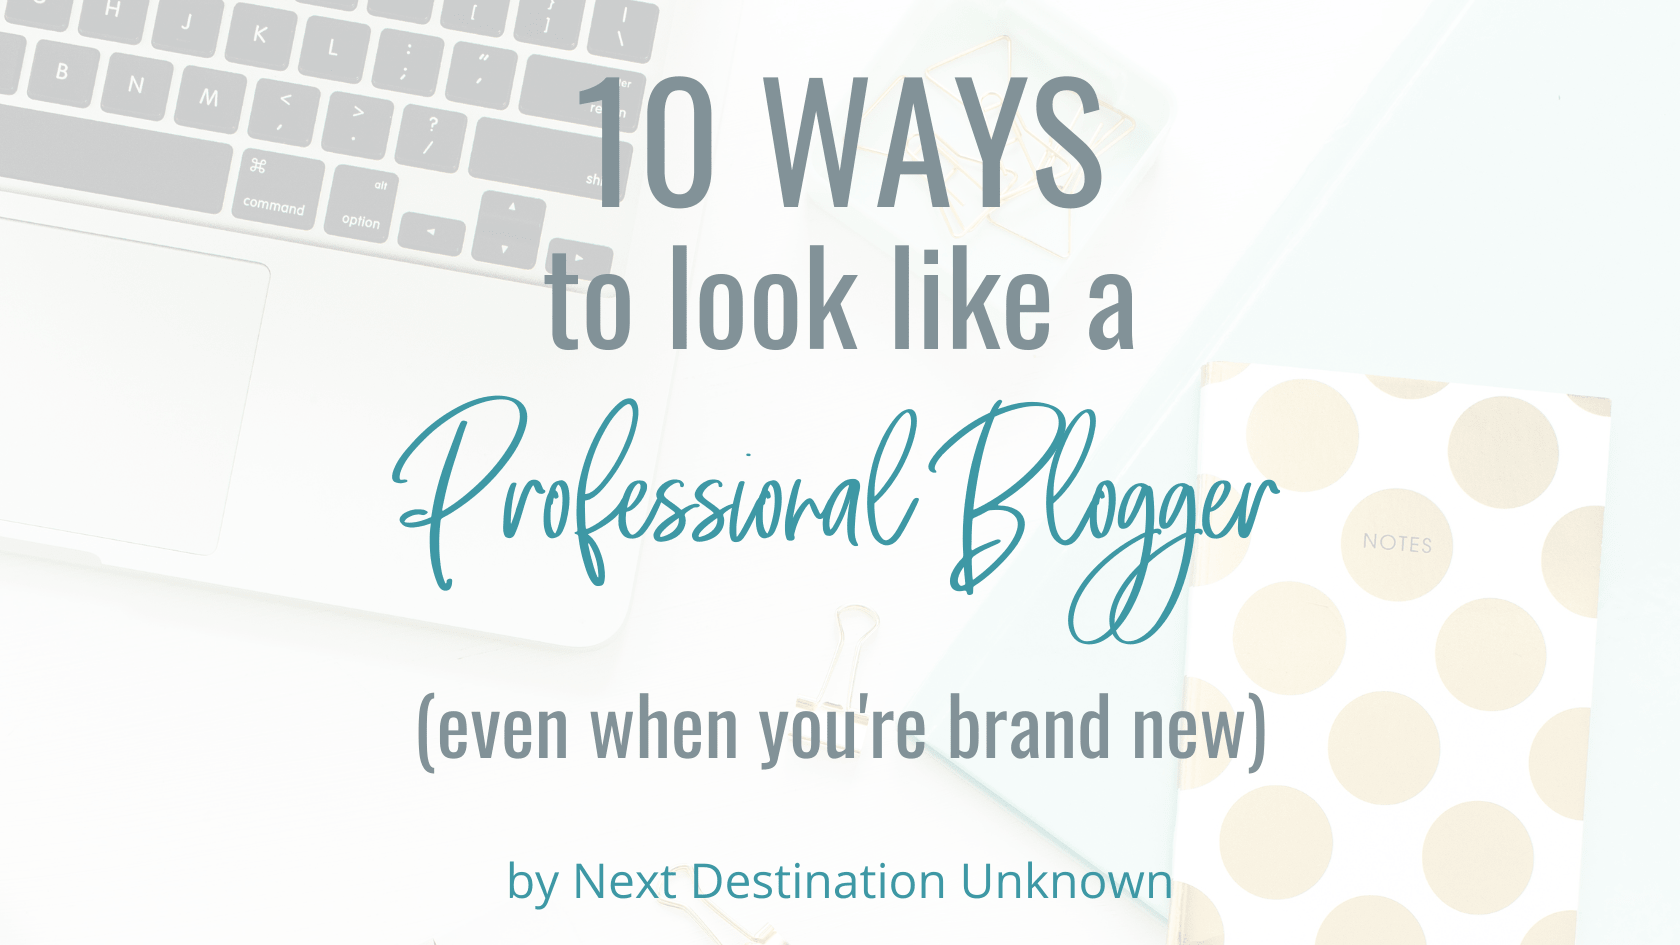 10 Ways to Look Like a Professional Blogger (Even When You're Brand New)